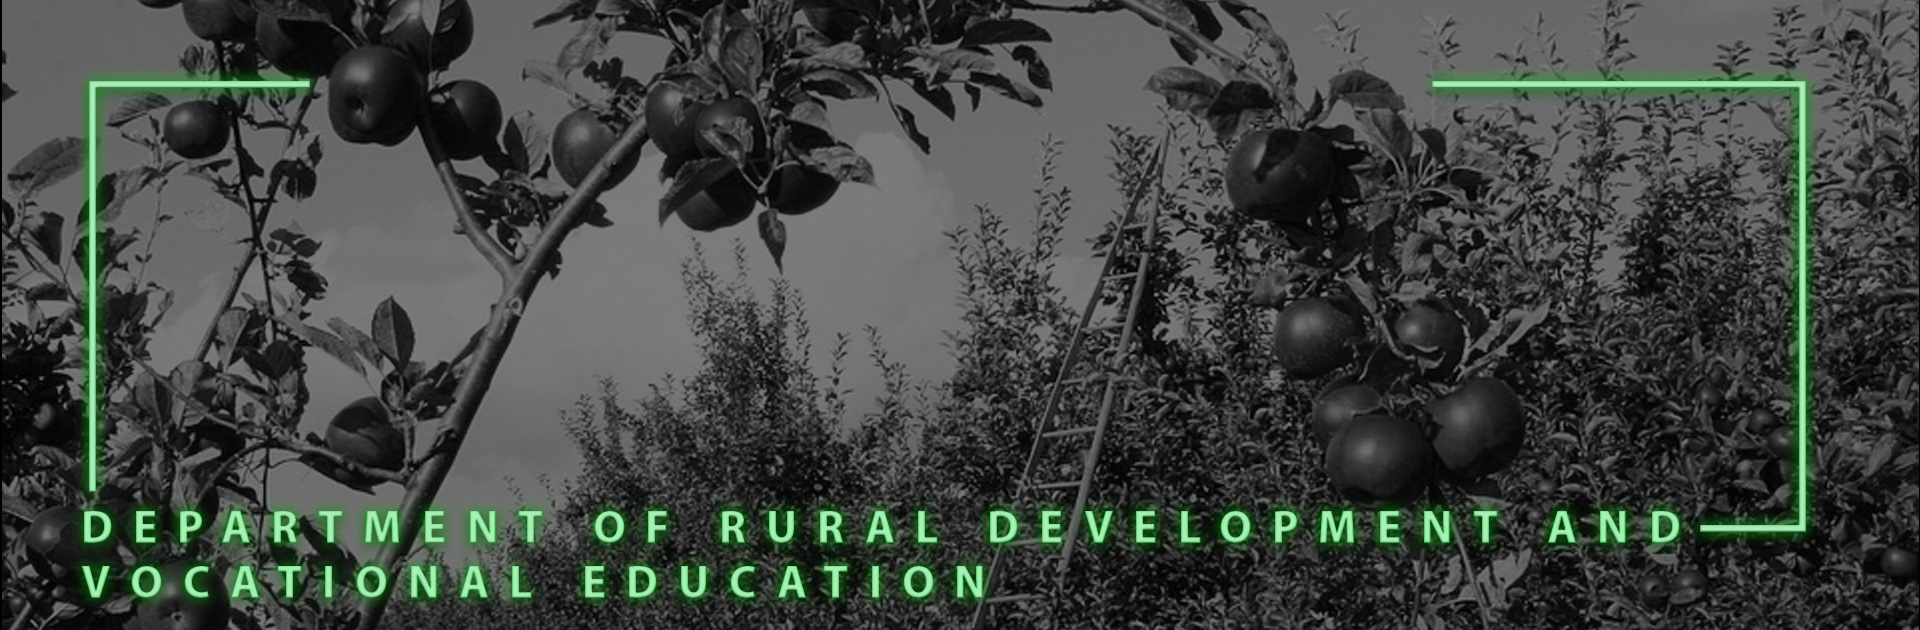 Department of Rural Development and Vocational Education (DRDVE)